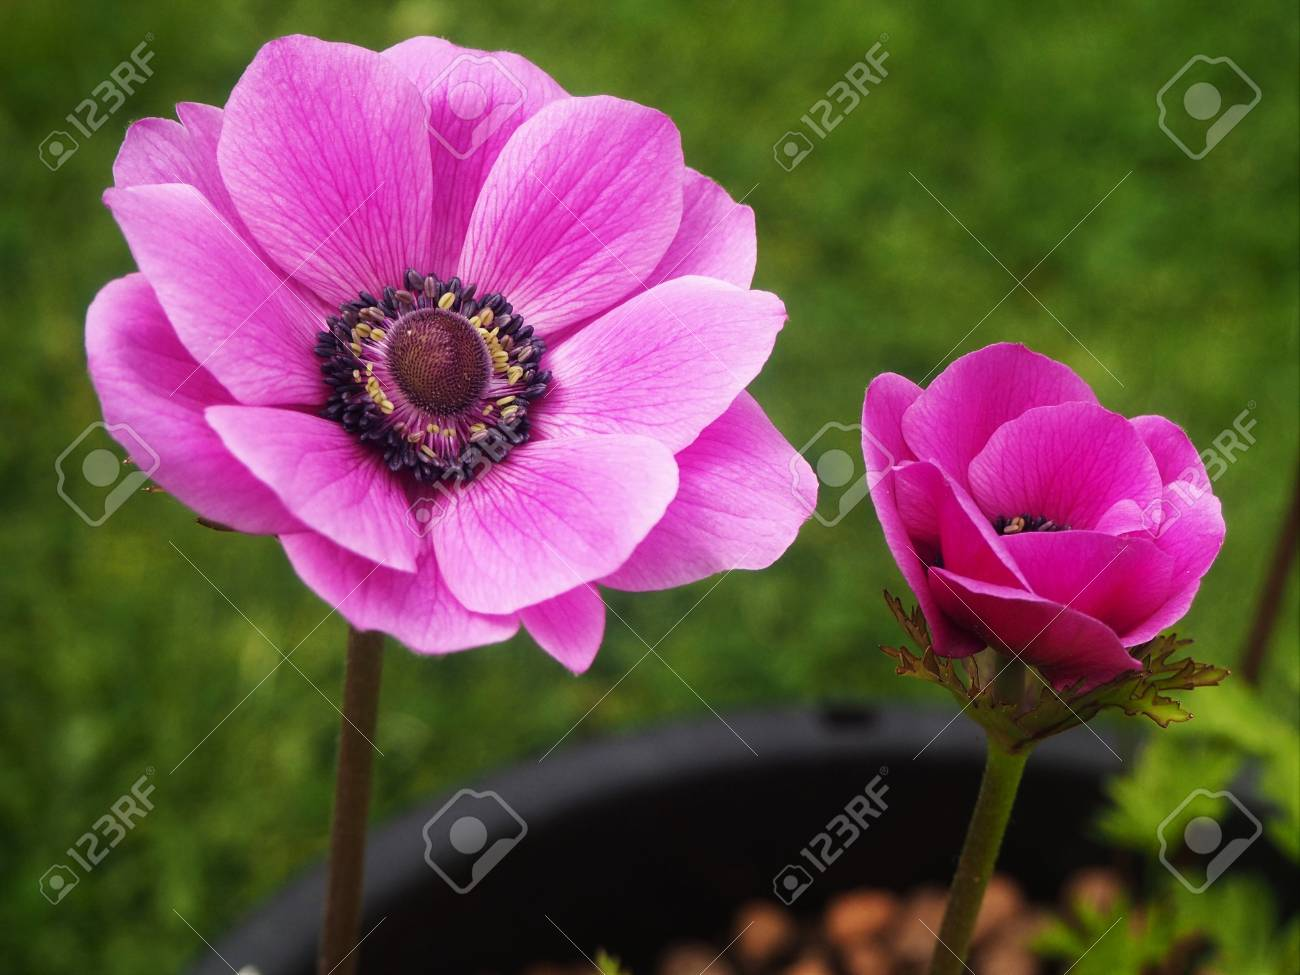 Beautiful pink anemone flower and bud growing in a pot in a garden beautiful pink anemone flower and bud growing in a pot in a garden stock photo mightylinksfo